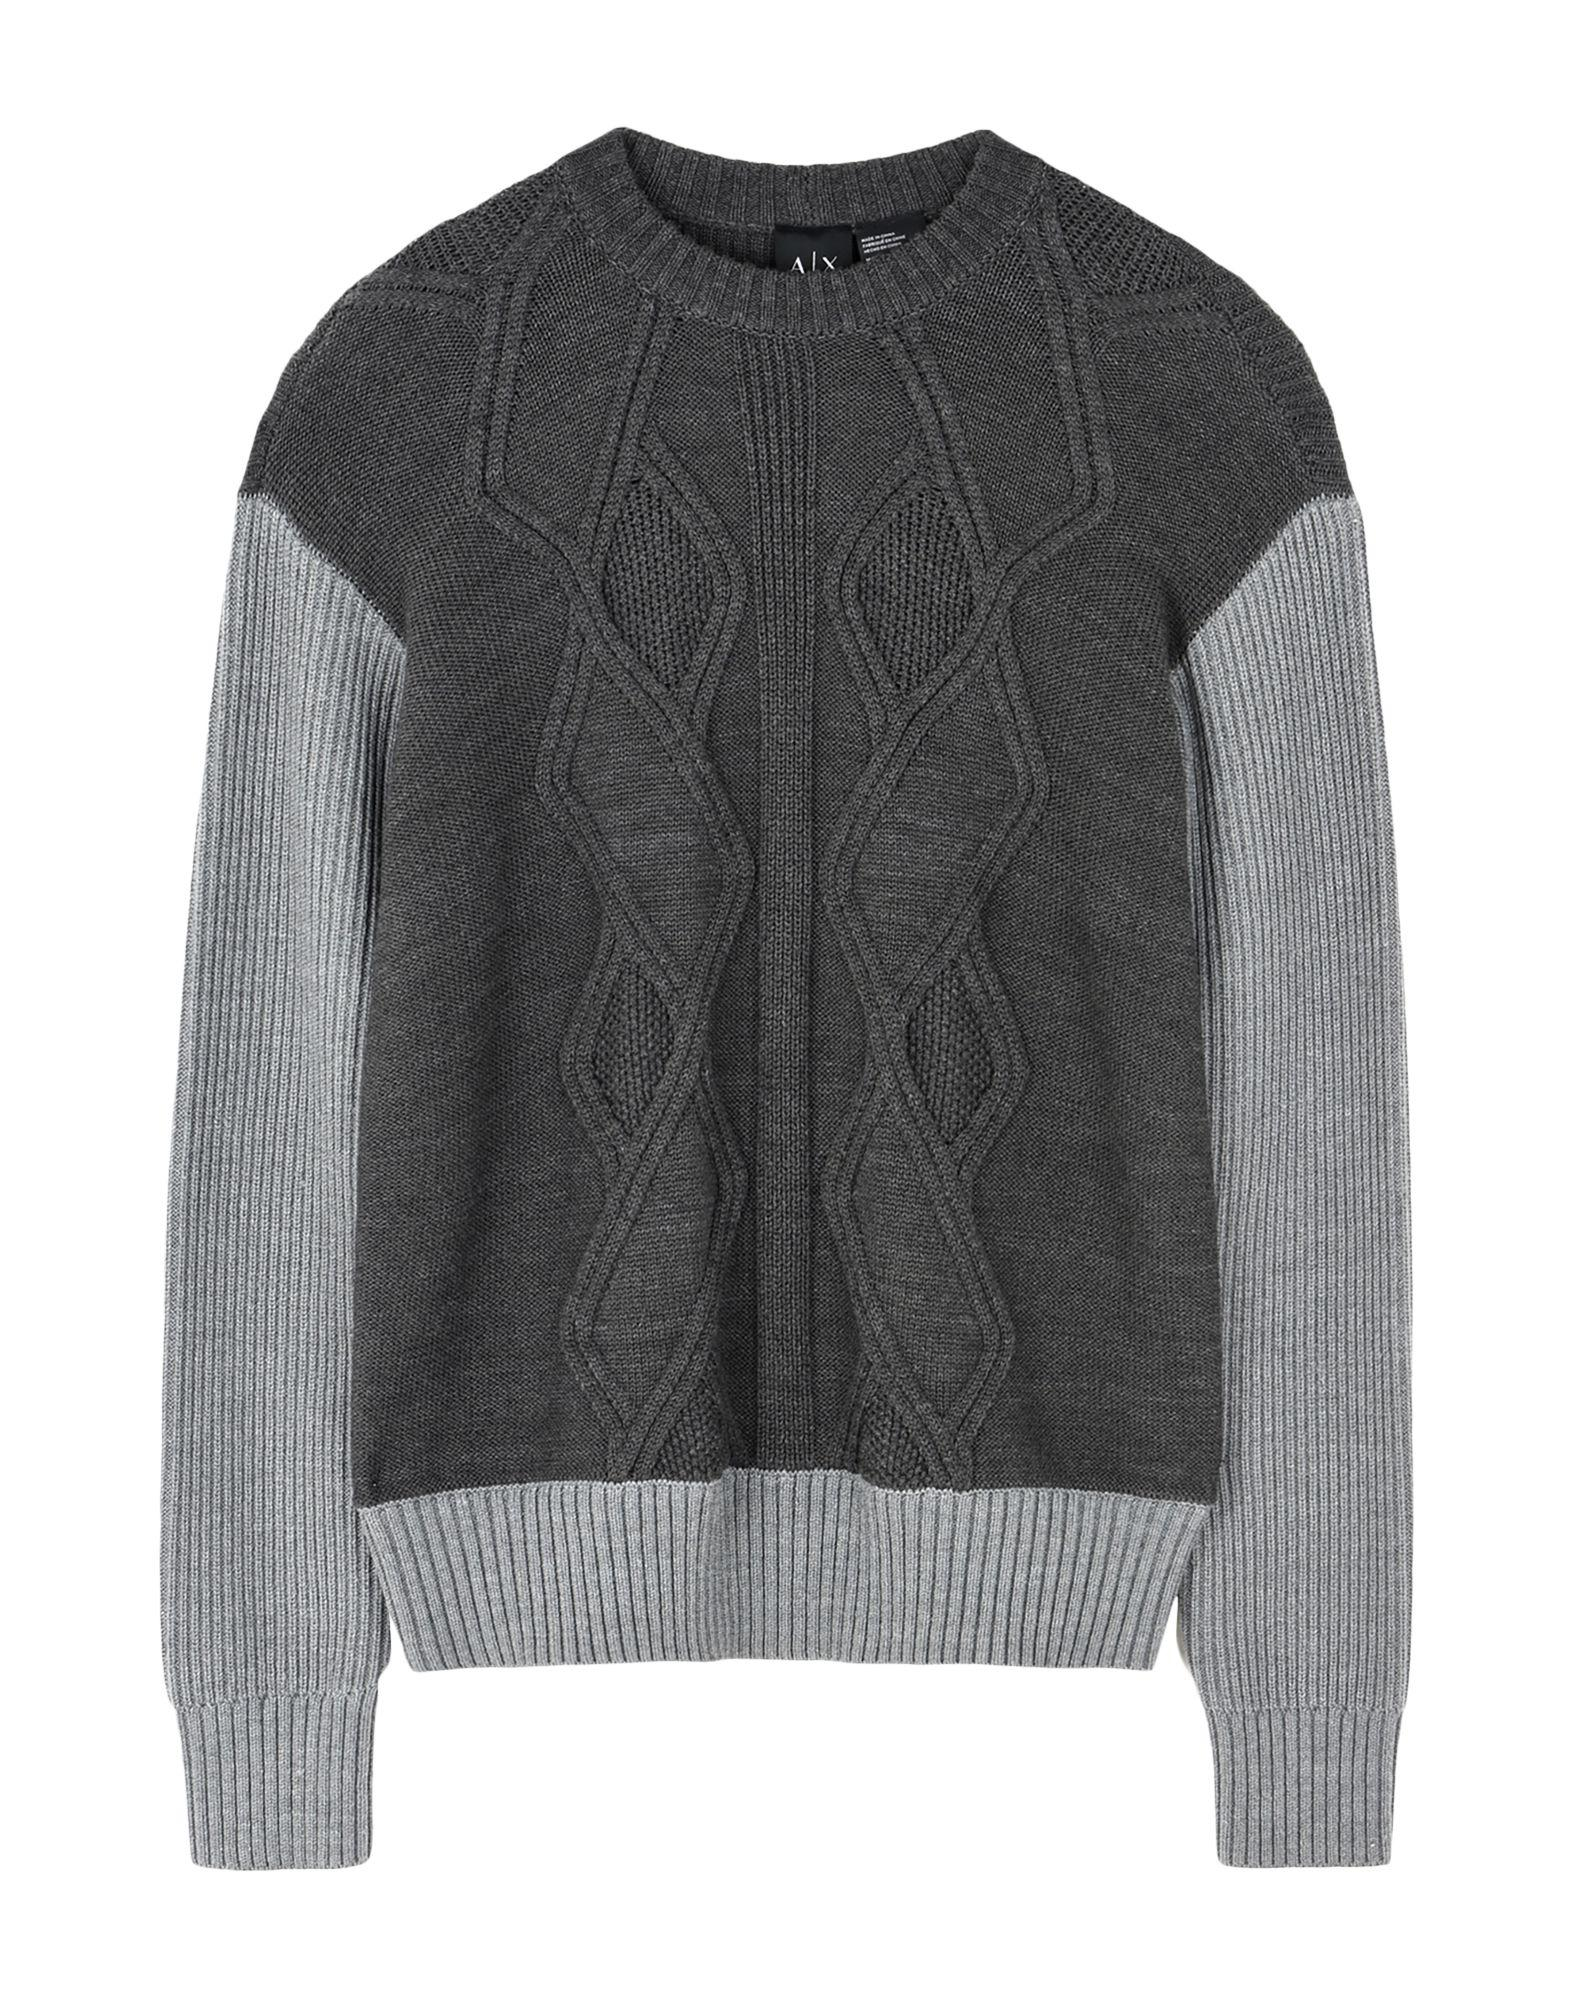 ac8249d900032 Armani Exchange Sweater in Gray for Men - Lyst